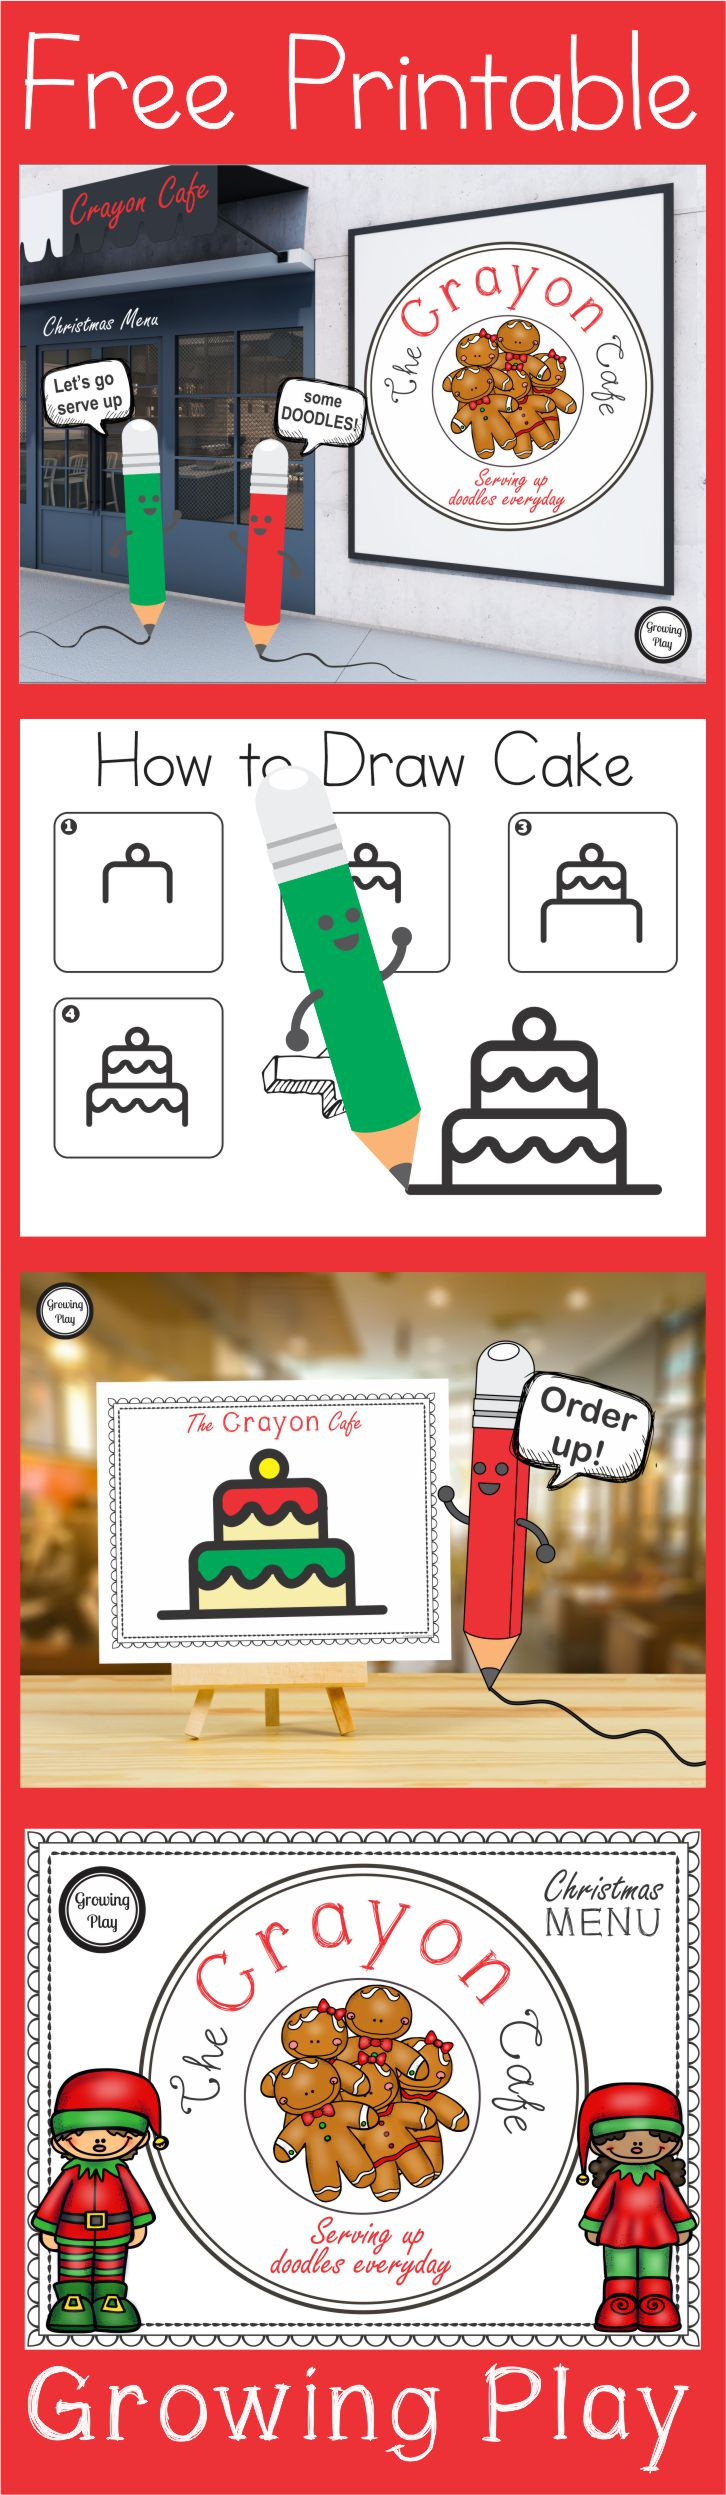 How to Draw Christmas Cake from the Christmas Crayon Cafe at Growing Play